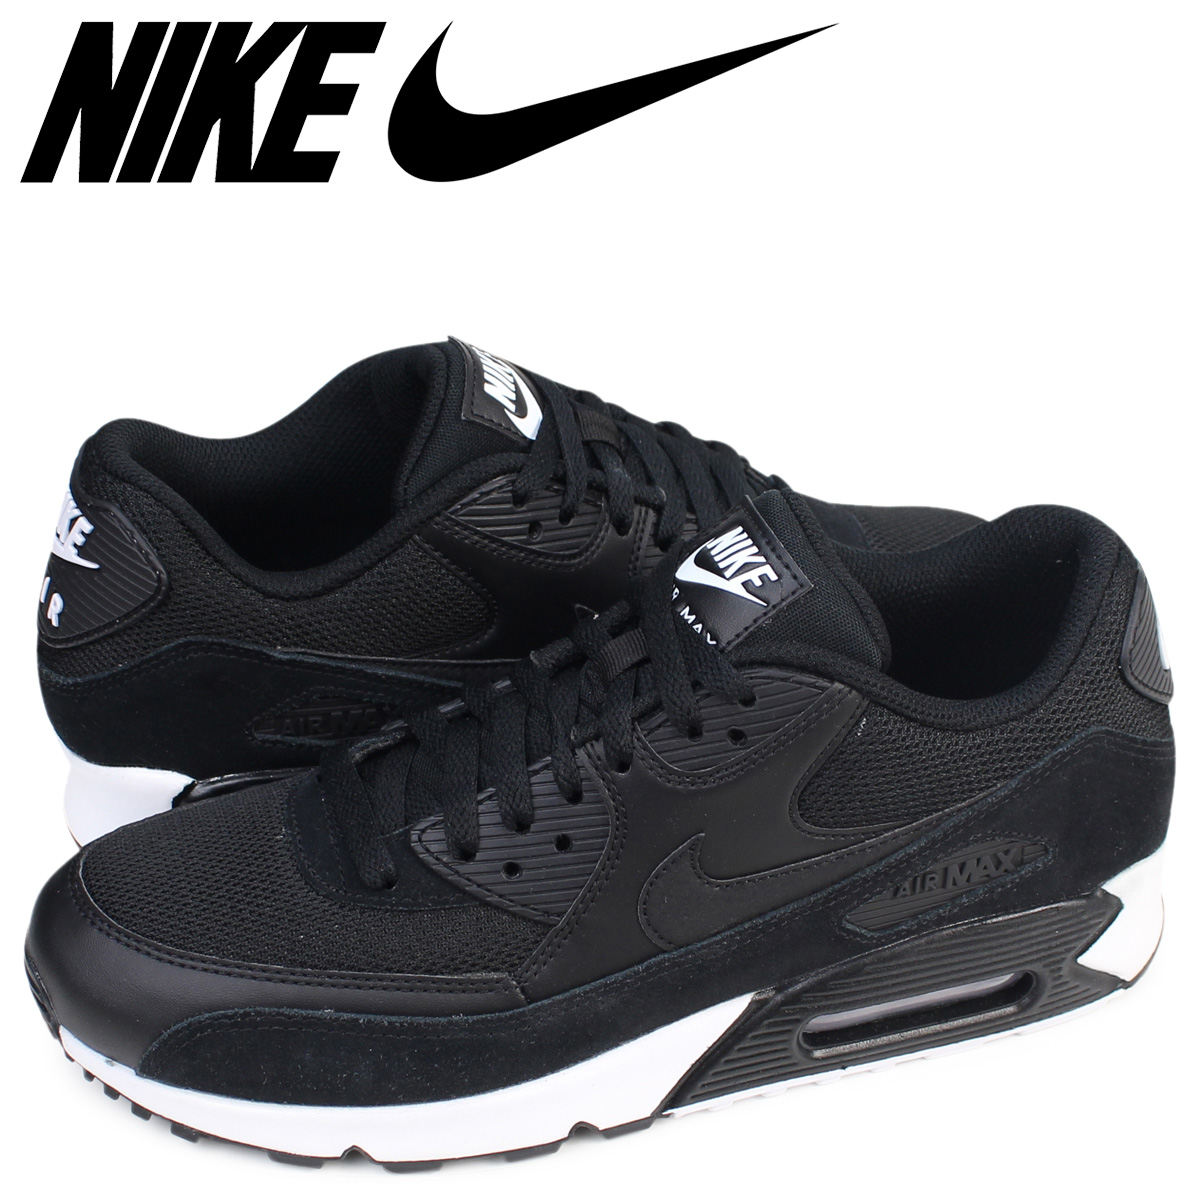 meet 8d66a d06c8 Sugar Online Shop  Nike NIKE Air Max 90 men s sneakers AIR MAX 90 ESSENTIAL  537,384-077 shoes black  6 28 Shinnyu load    Rakuten Global Market